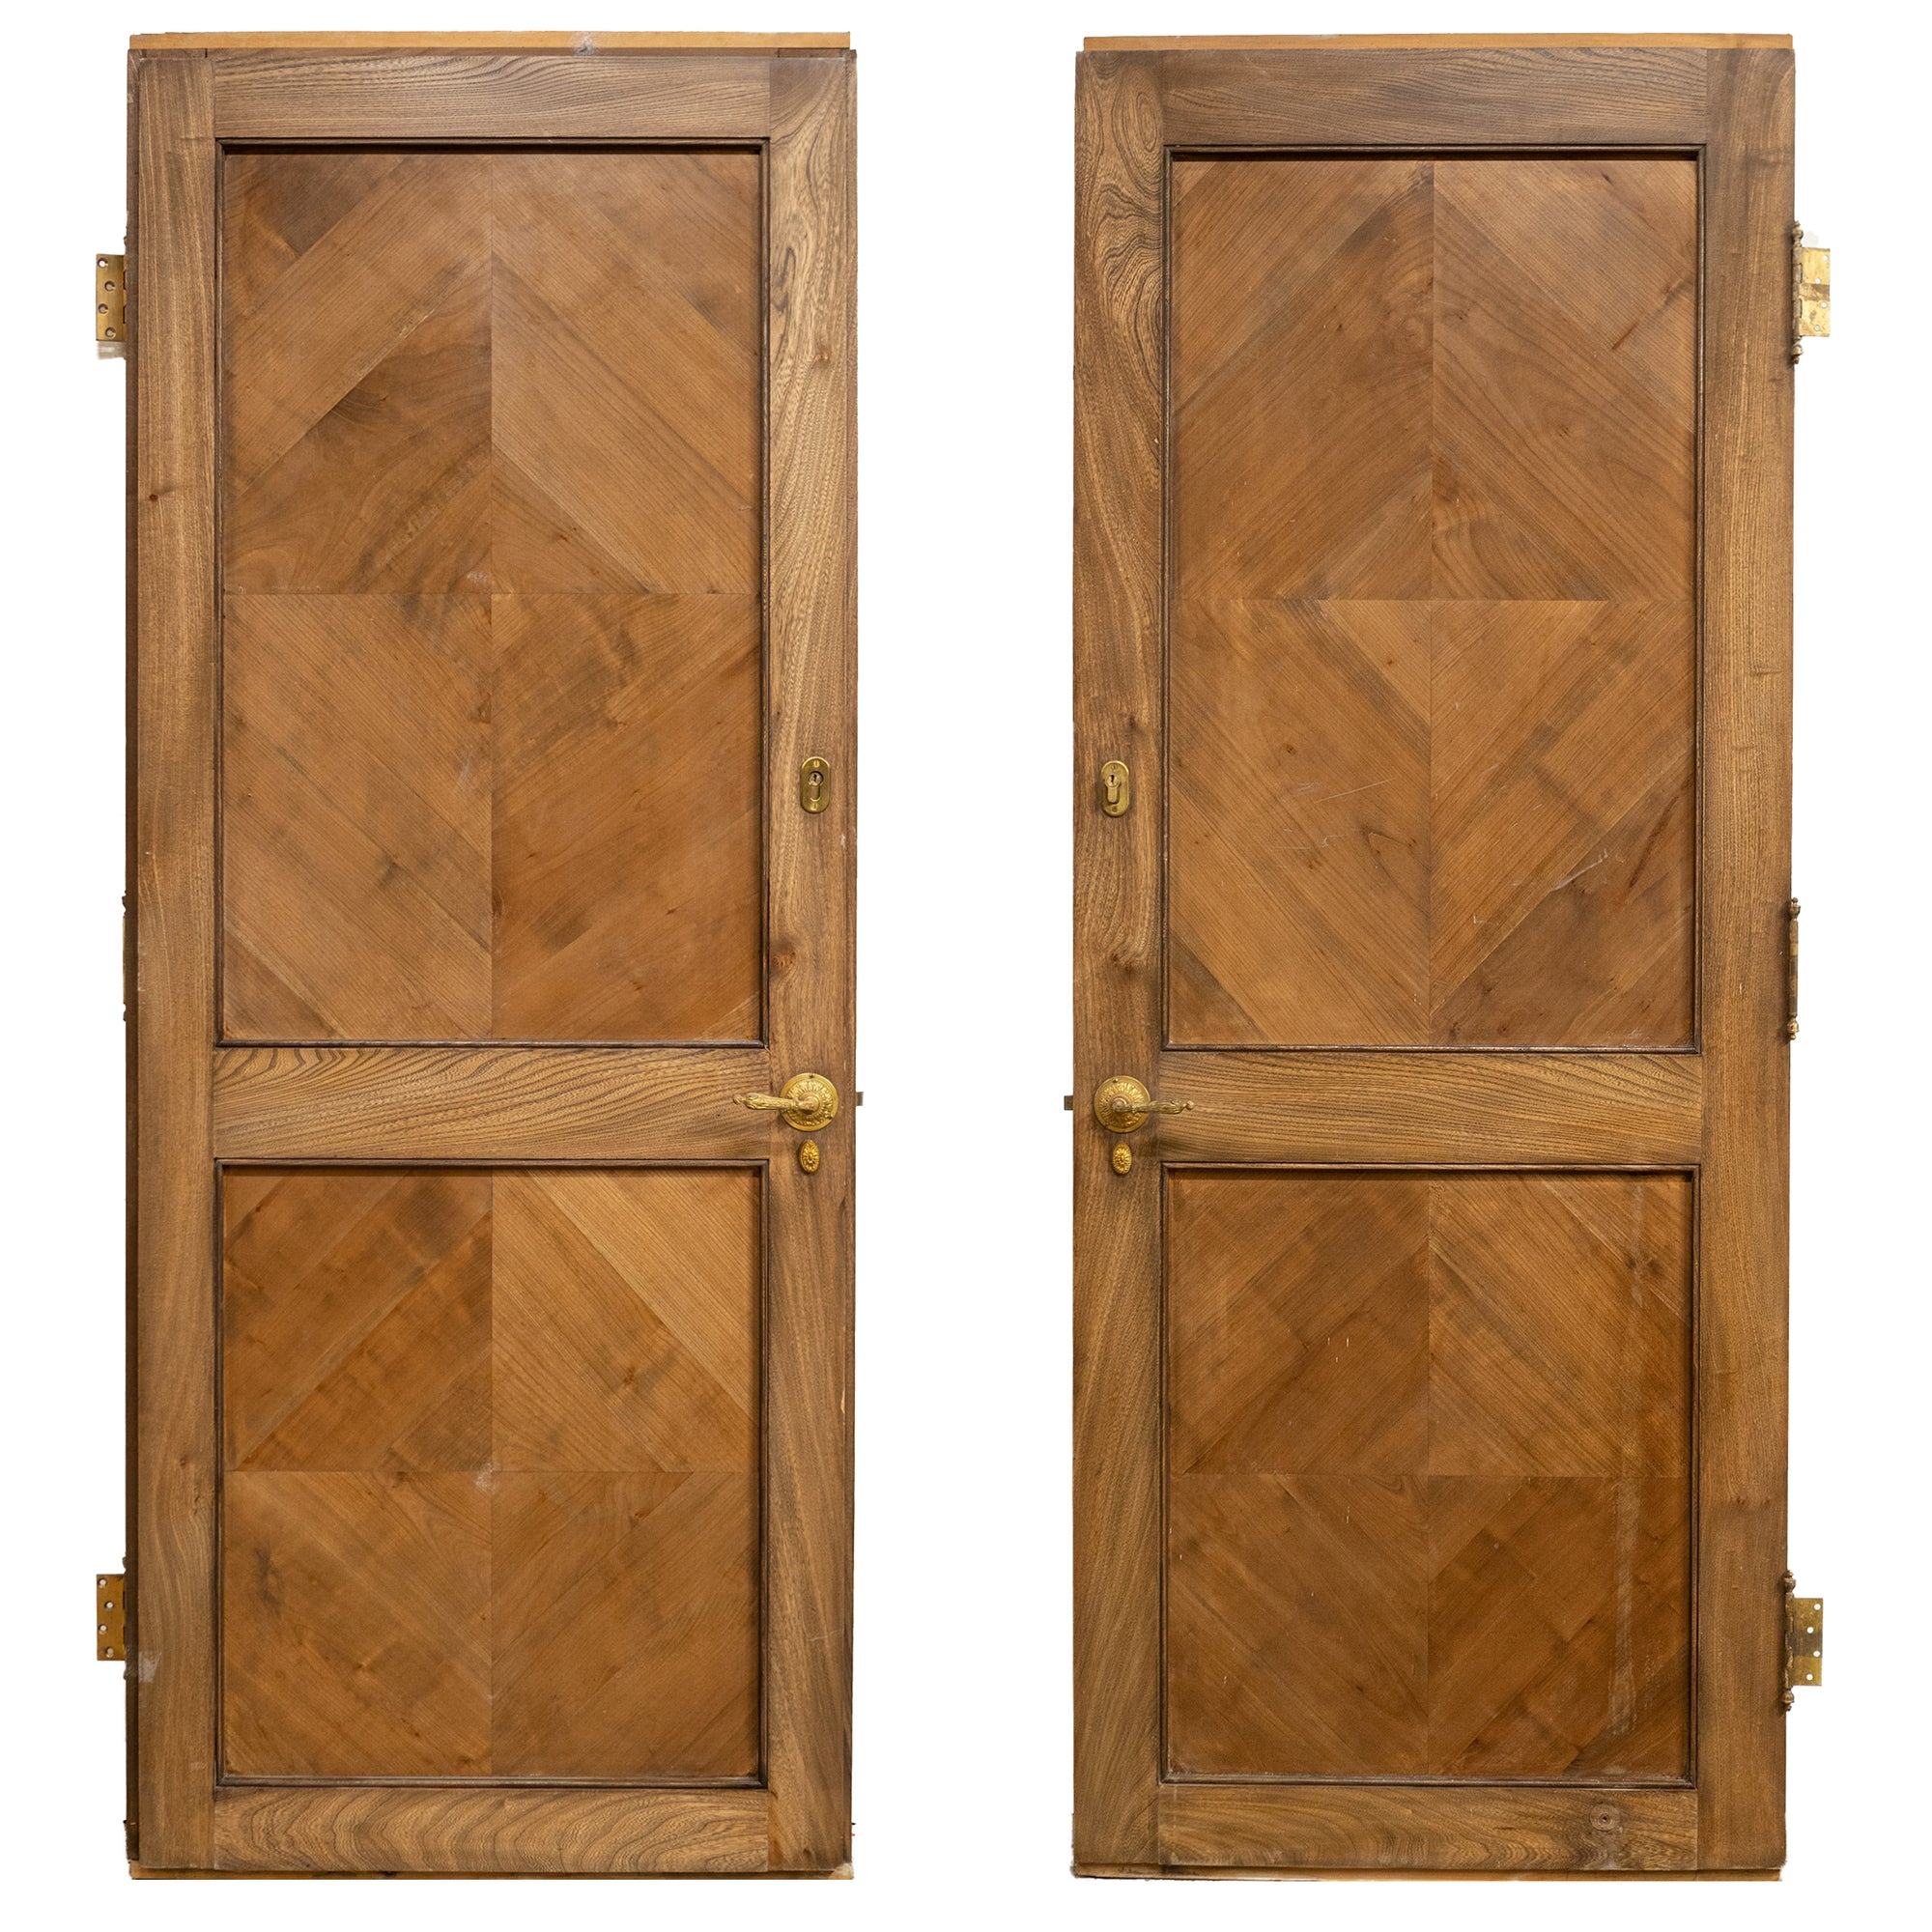 Reclaimed Tulip Wood Two Panel Door - 210cm x 84cm | The Architectural Forum